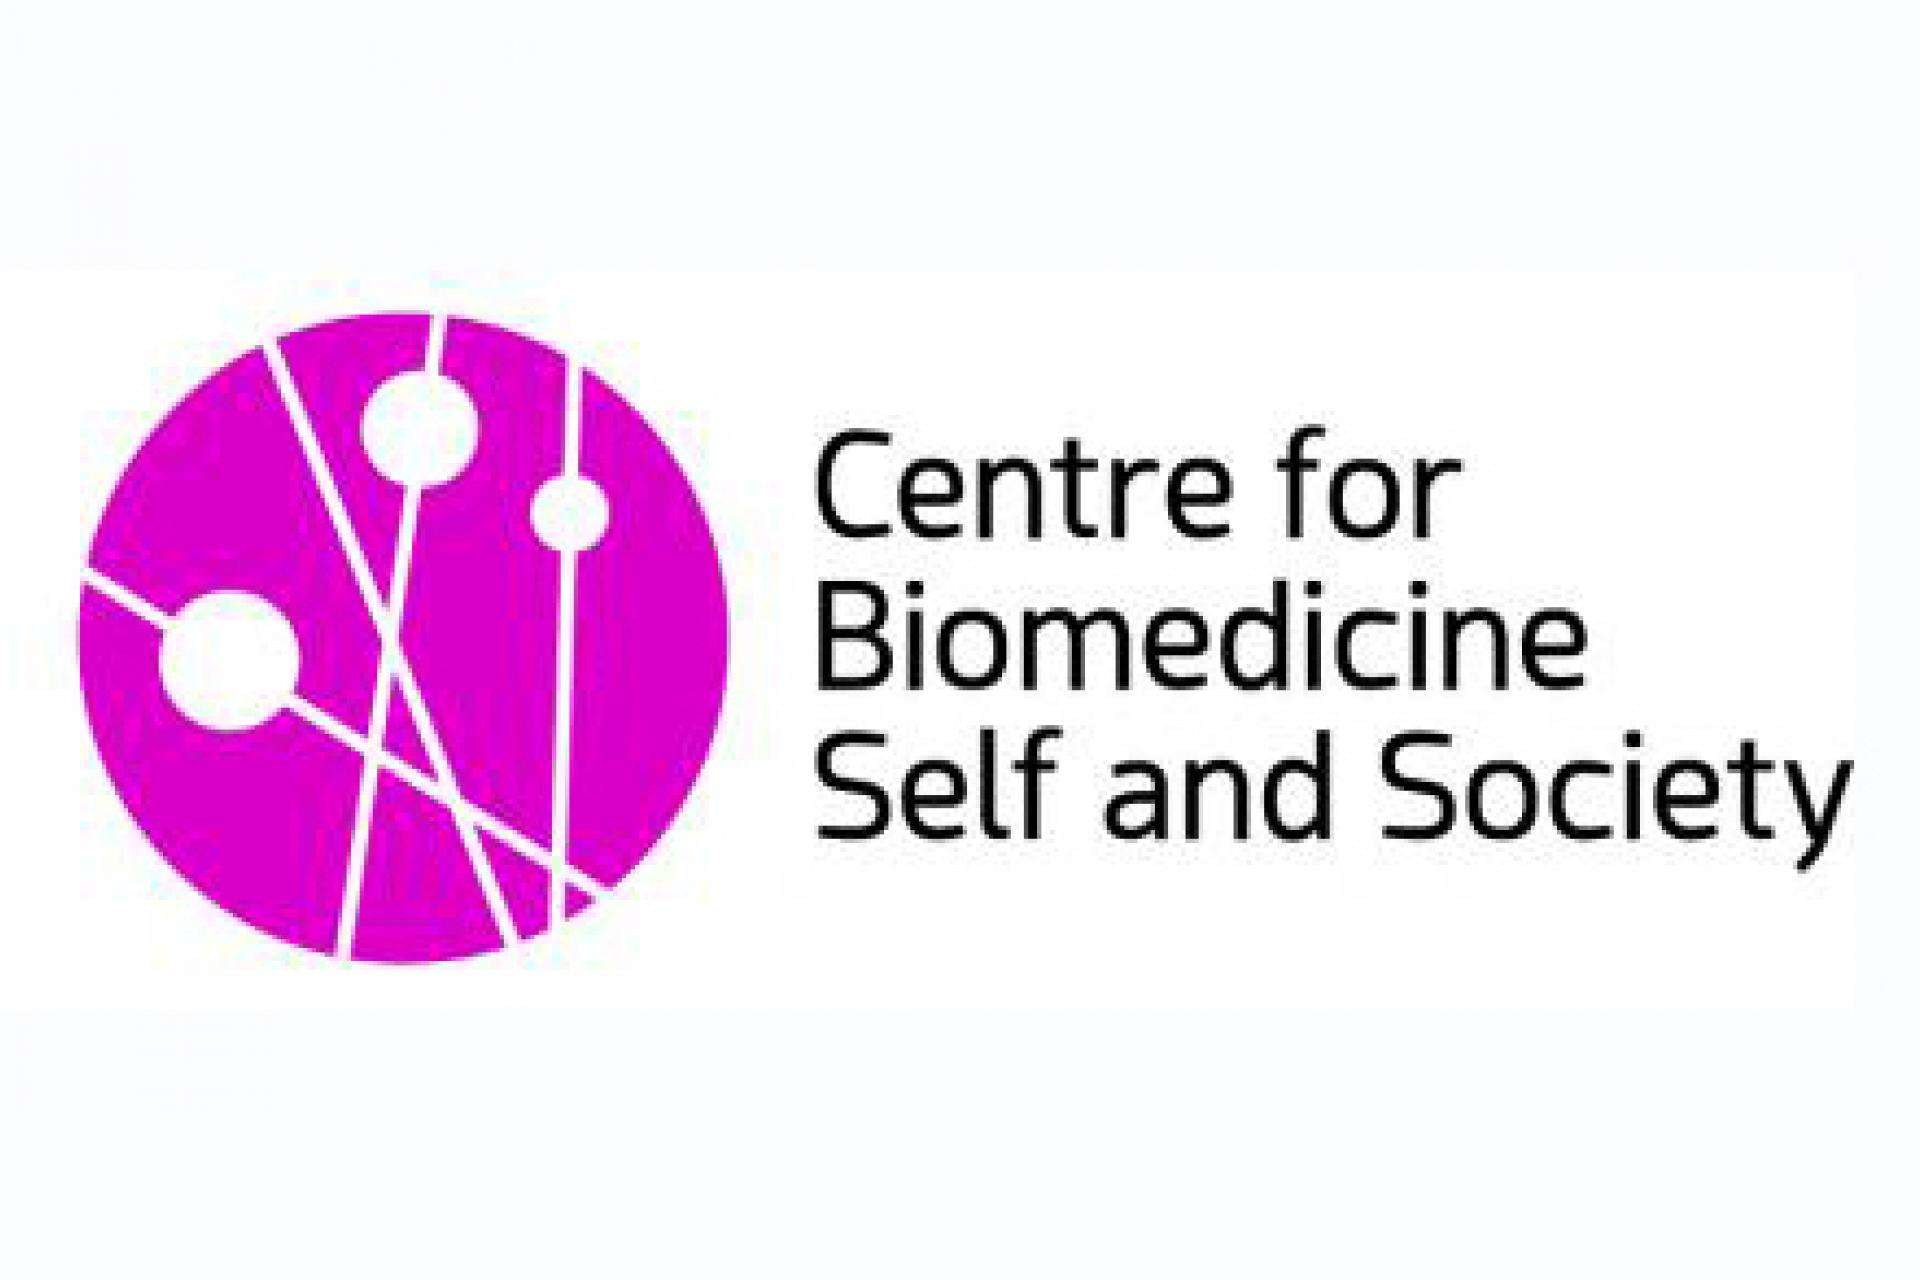 Centre for Biomedicine, Self and Society logo